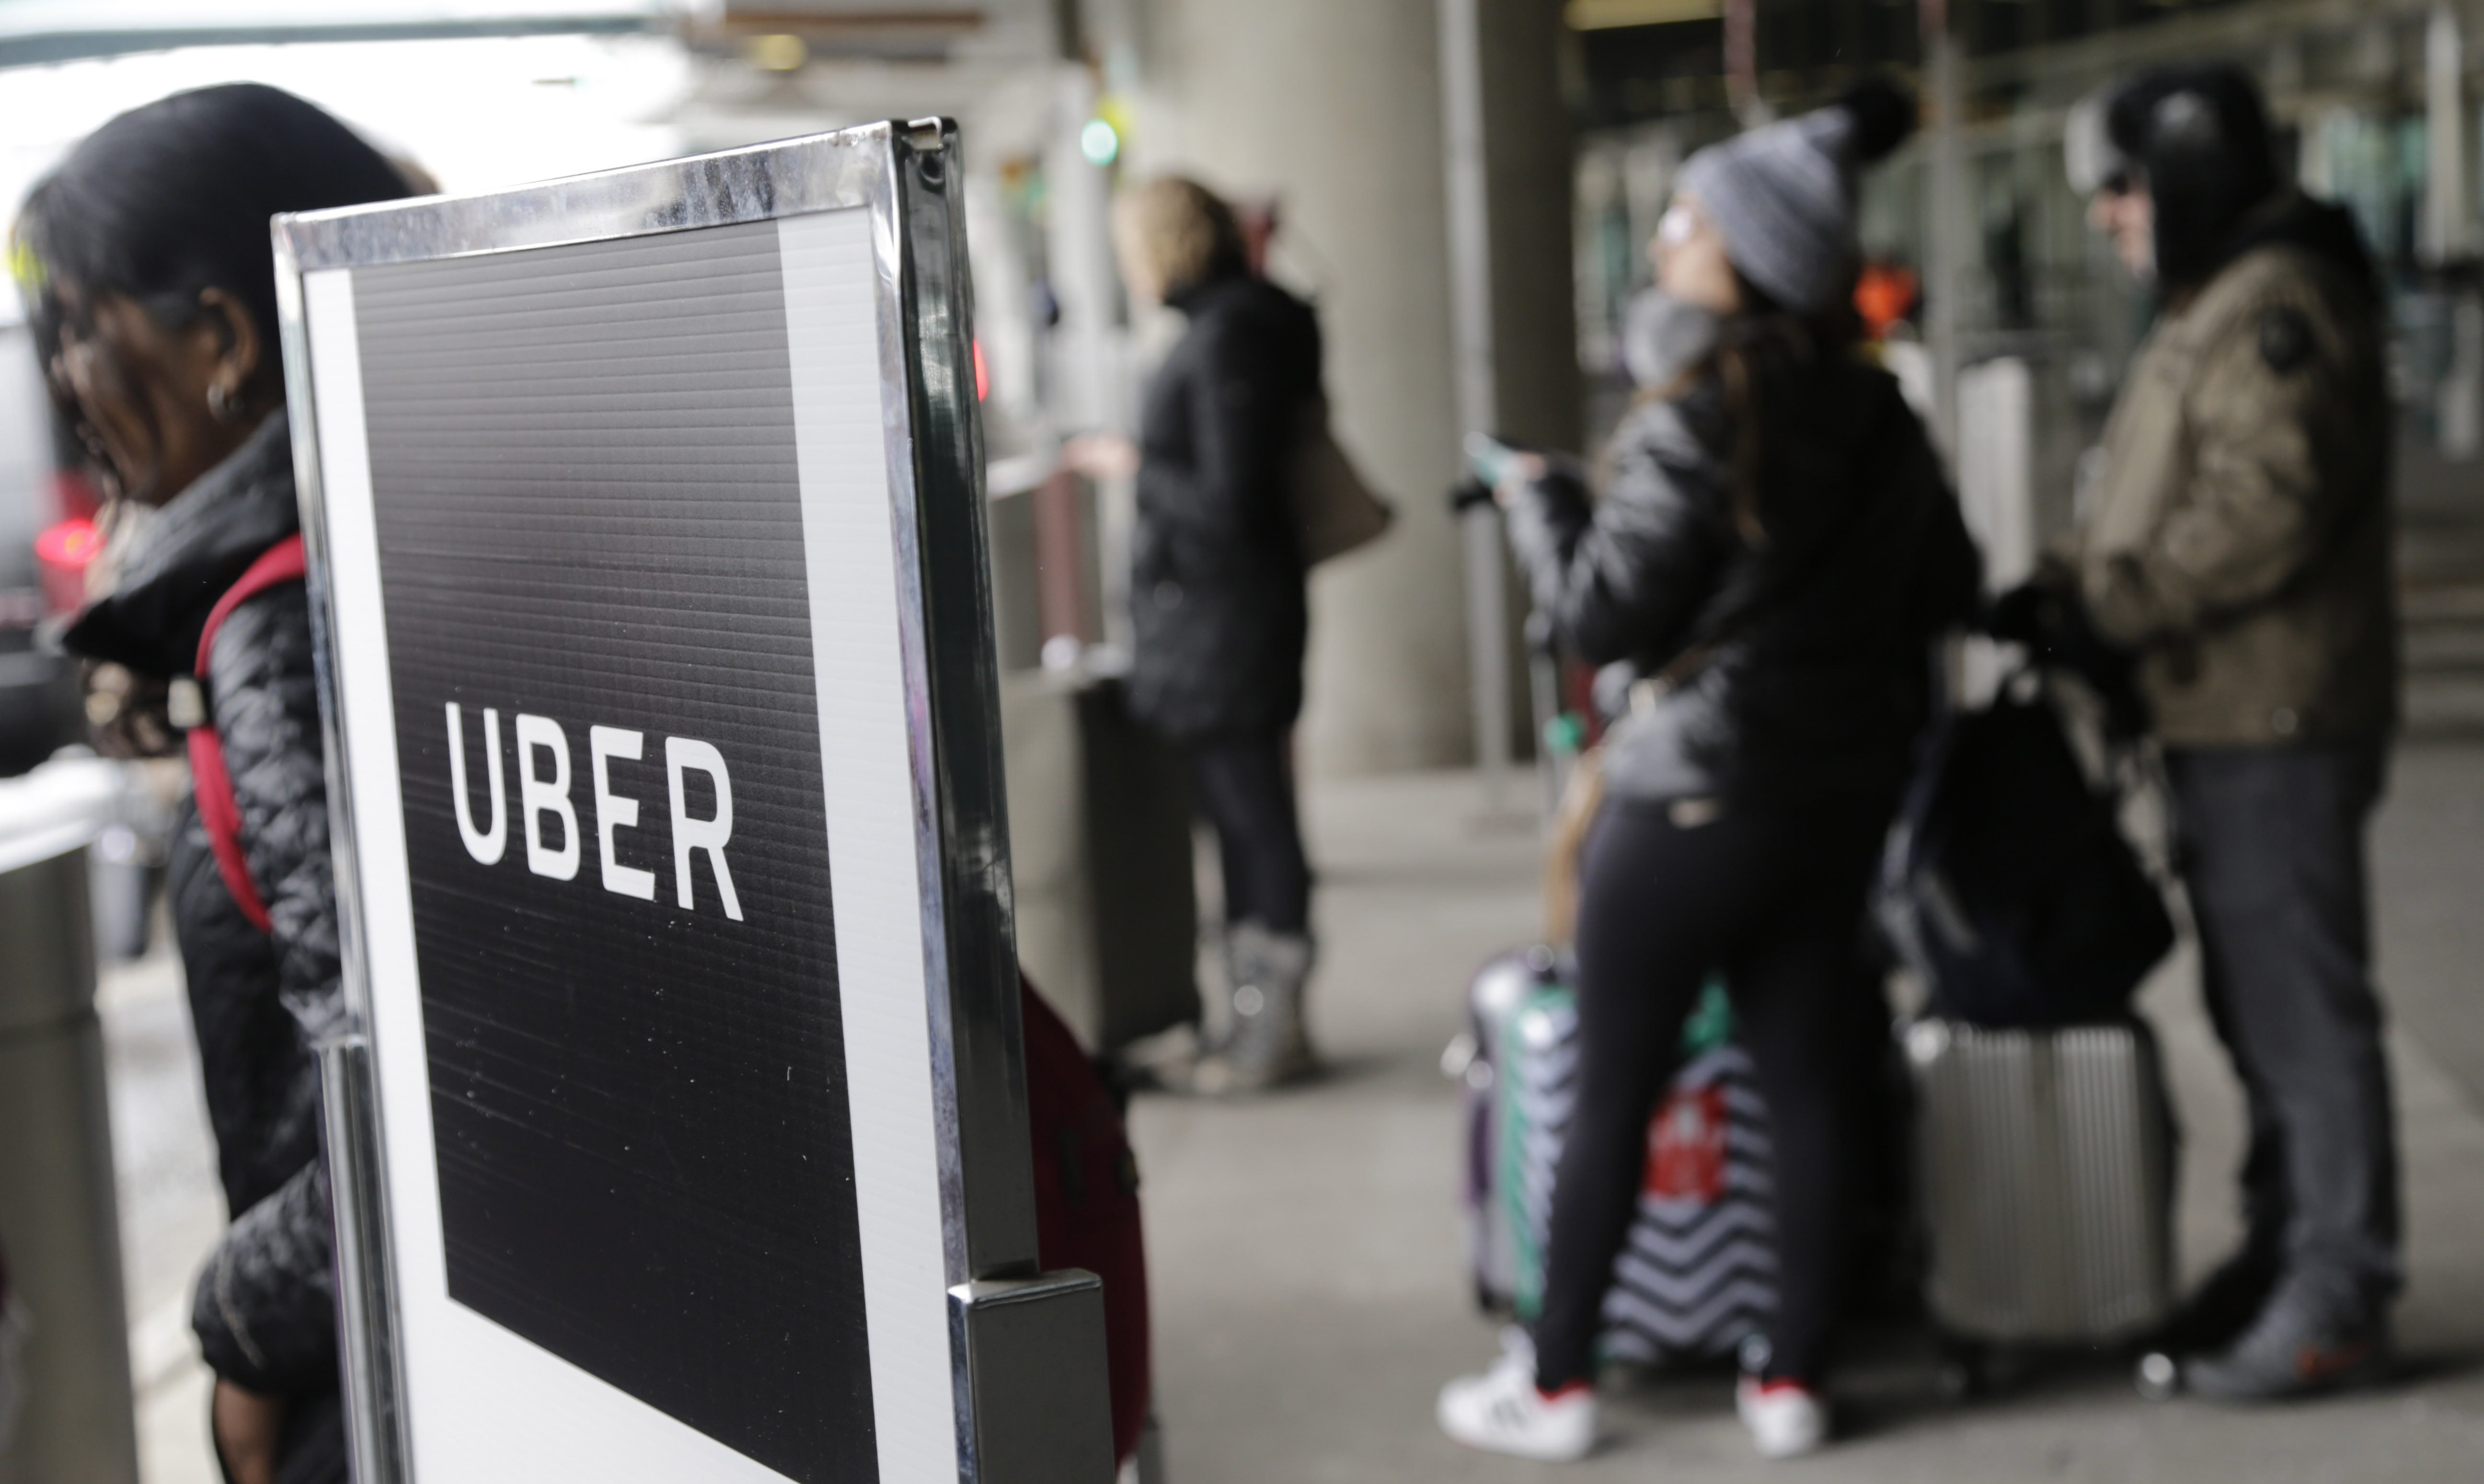 A sign marks a pick-up point for the Uber car service at LaGuardia Airport in New York, Wednesday, March 15, 2017.  (AP Photo/Seth Wenig)